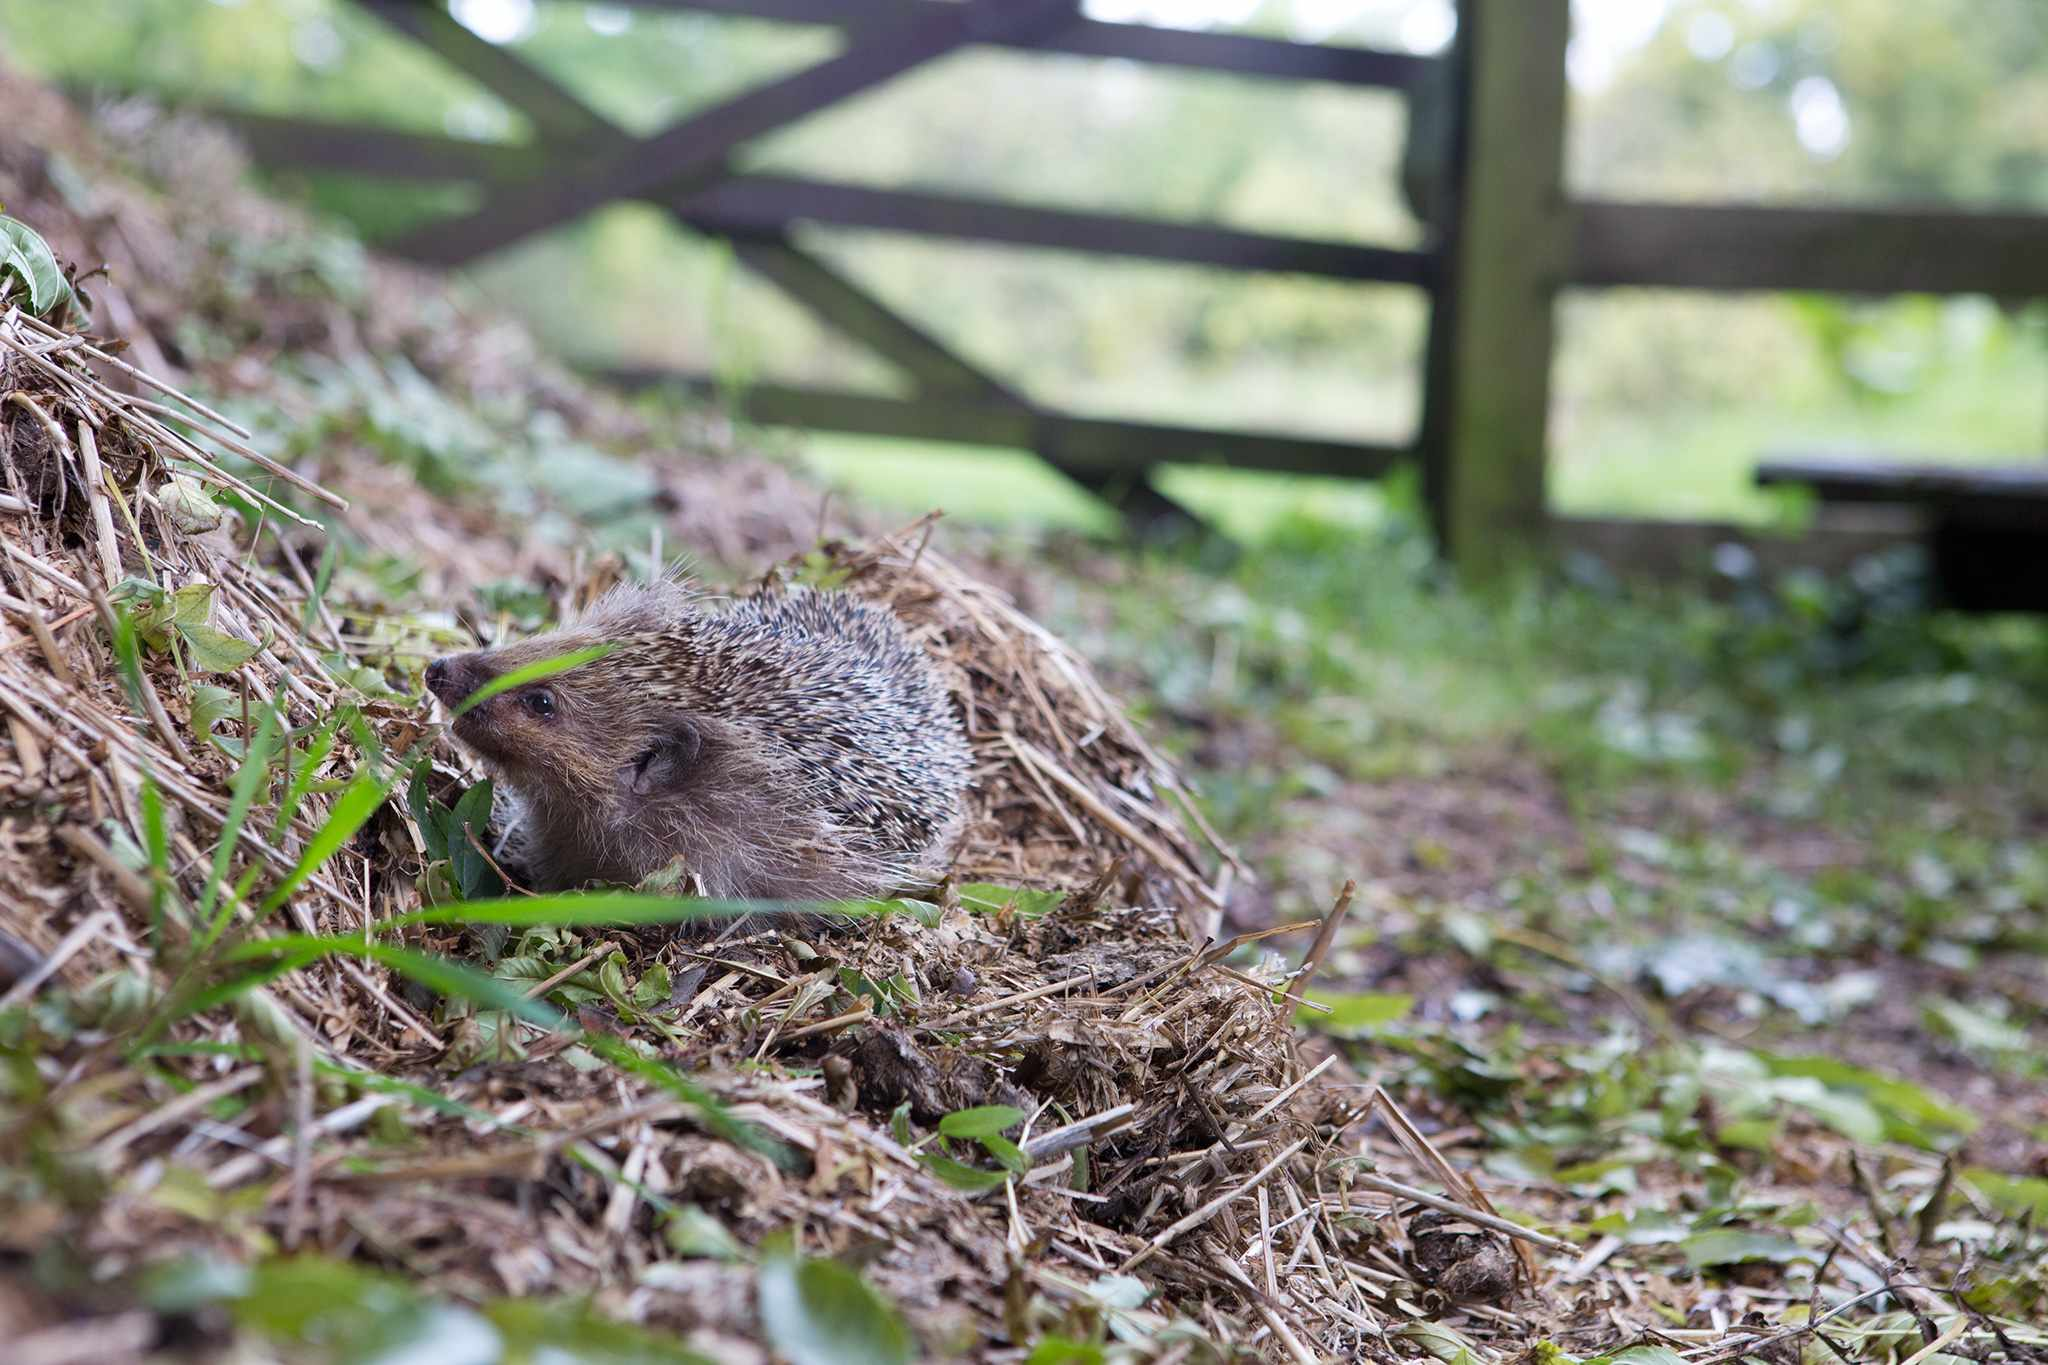 Hedgehog and compost heap